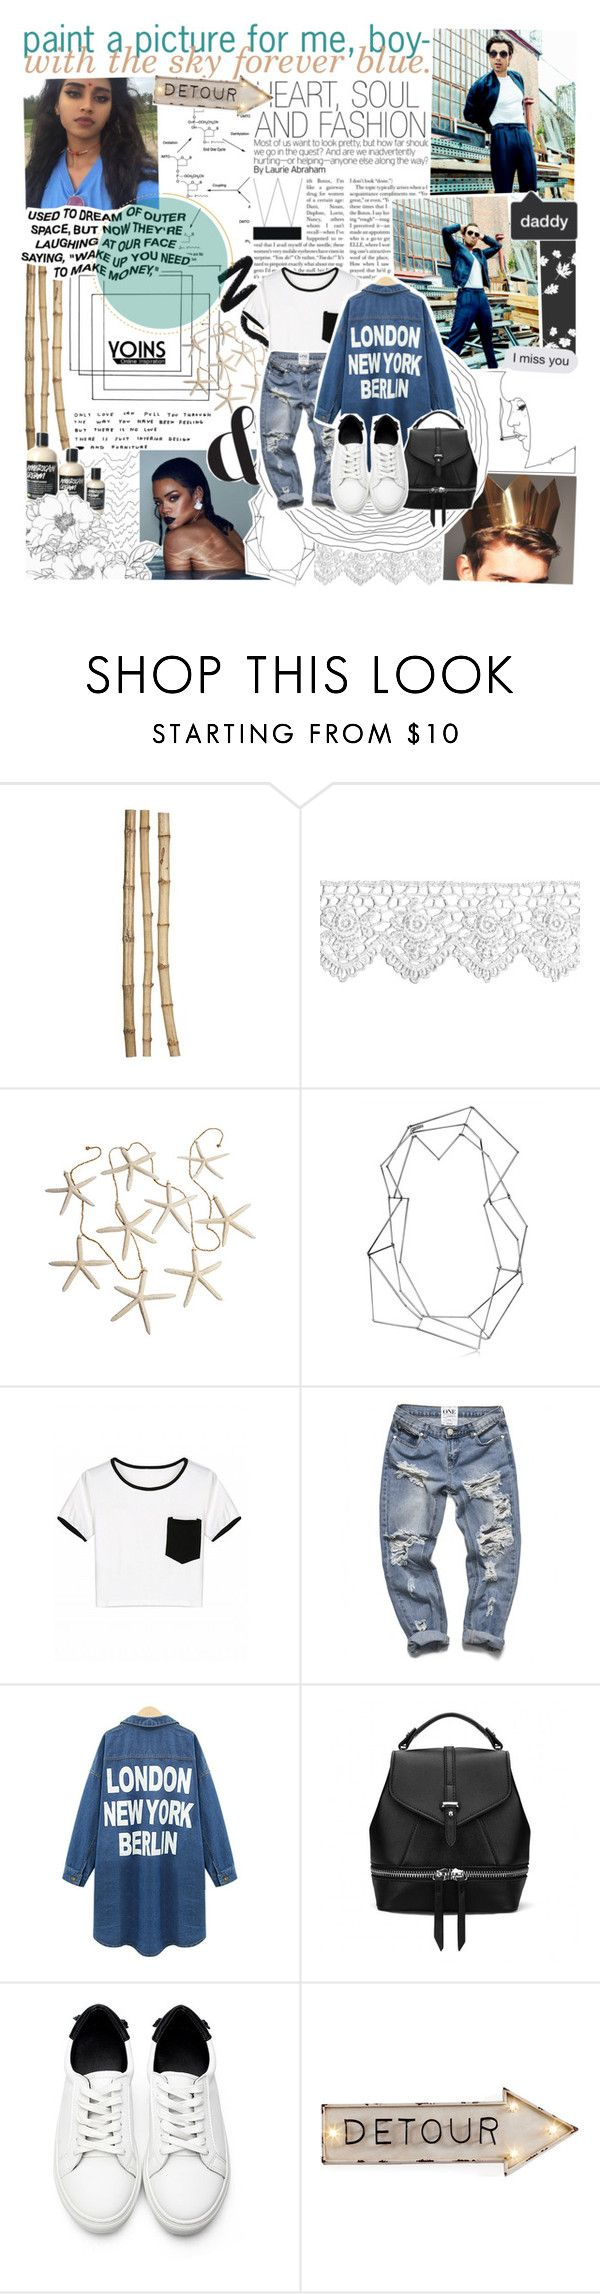 """all my kisses, say you'll miss it and can't you can't forget me ; yoins"" by oreokk22 ❤ liked on Polyvore featuring Crate and Barrel, BANCI GIOIELLI, Dot & Bo, yoins, yoinscollection and loveyoins"